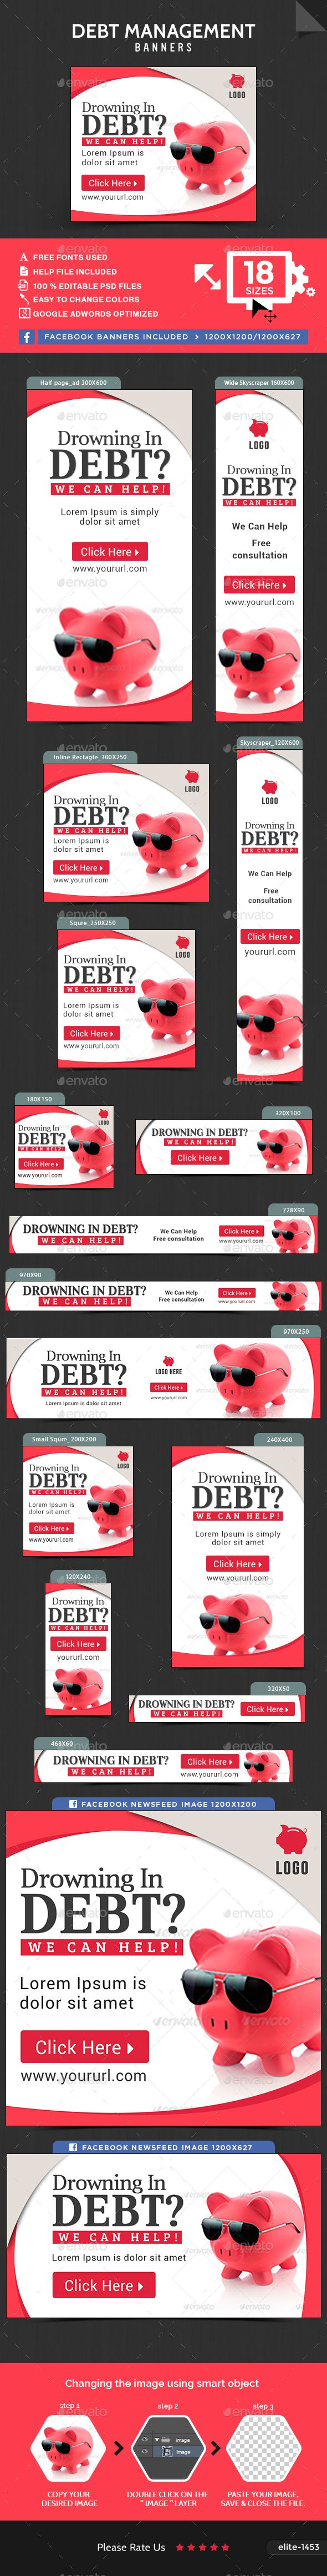 debt management banners social media pinterest banner template